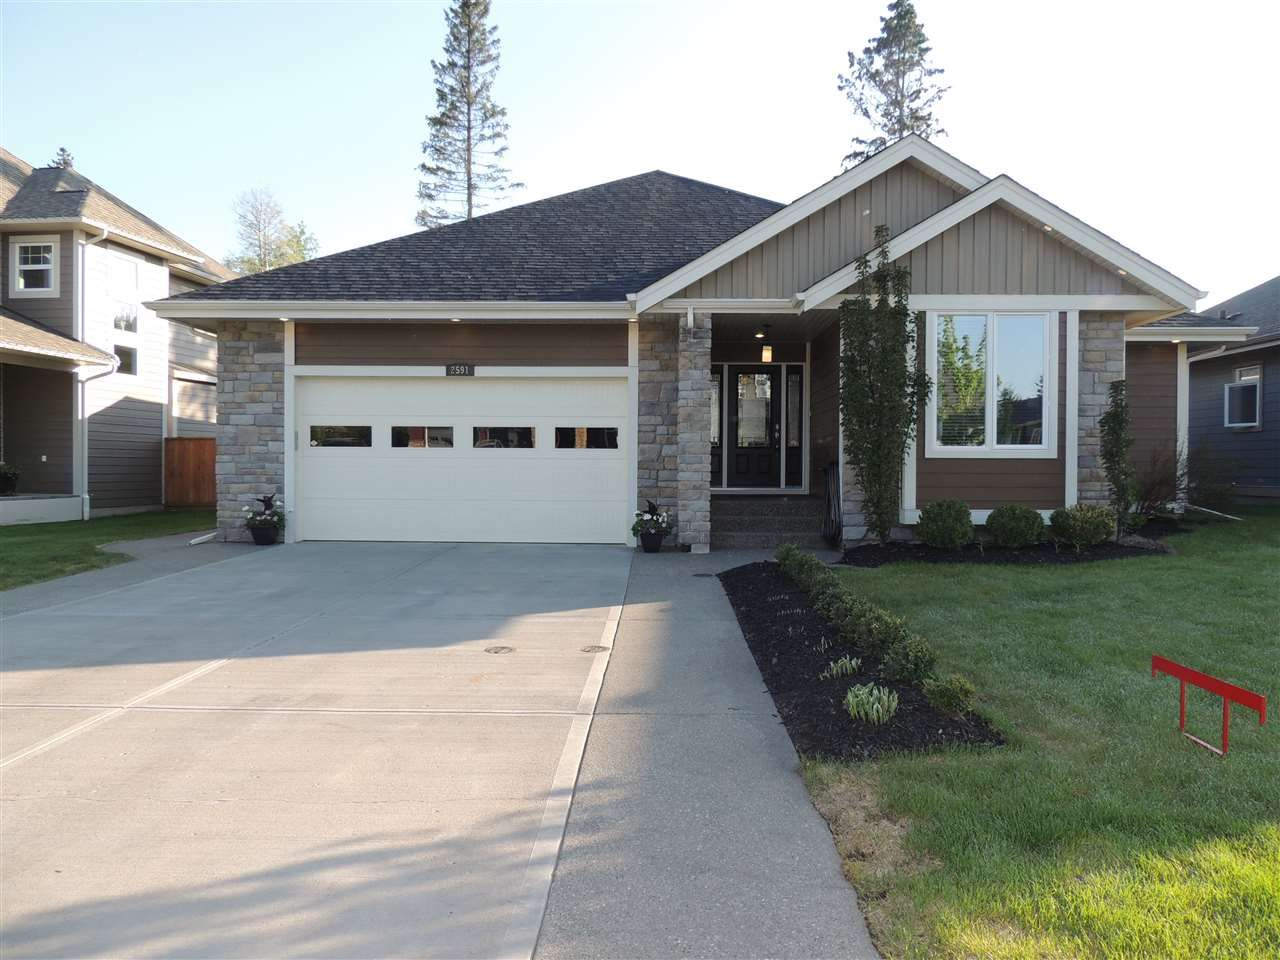 Main Photo: 2591 MAURICE DRIVE in : Charella/Starlane House for sale : MLS®# R2271541